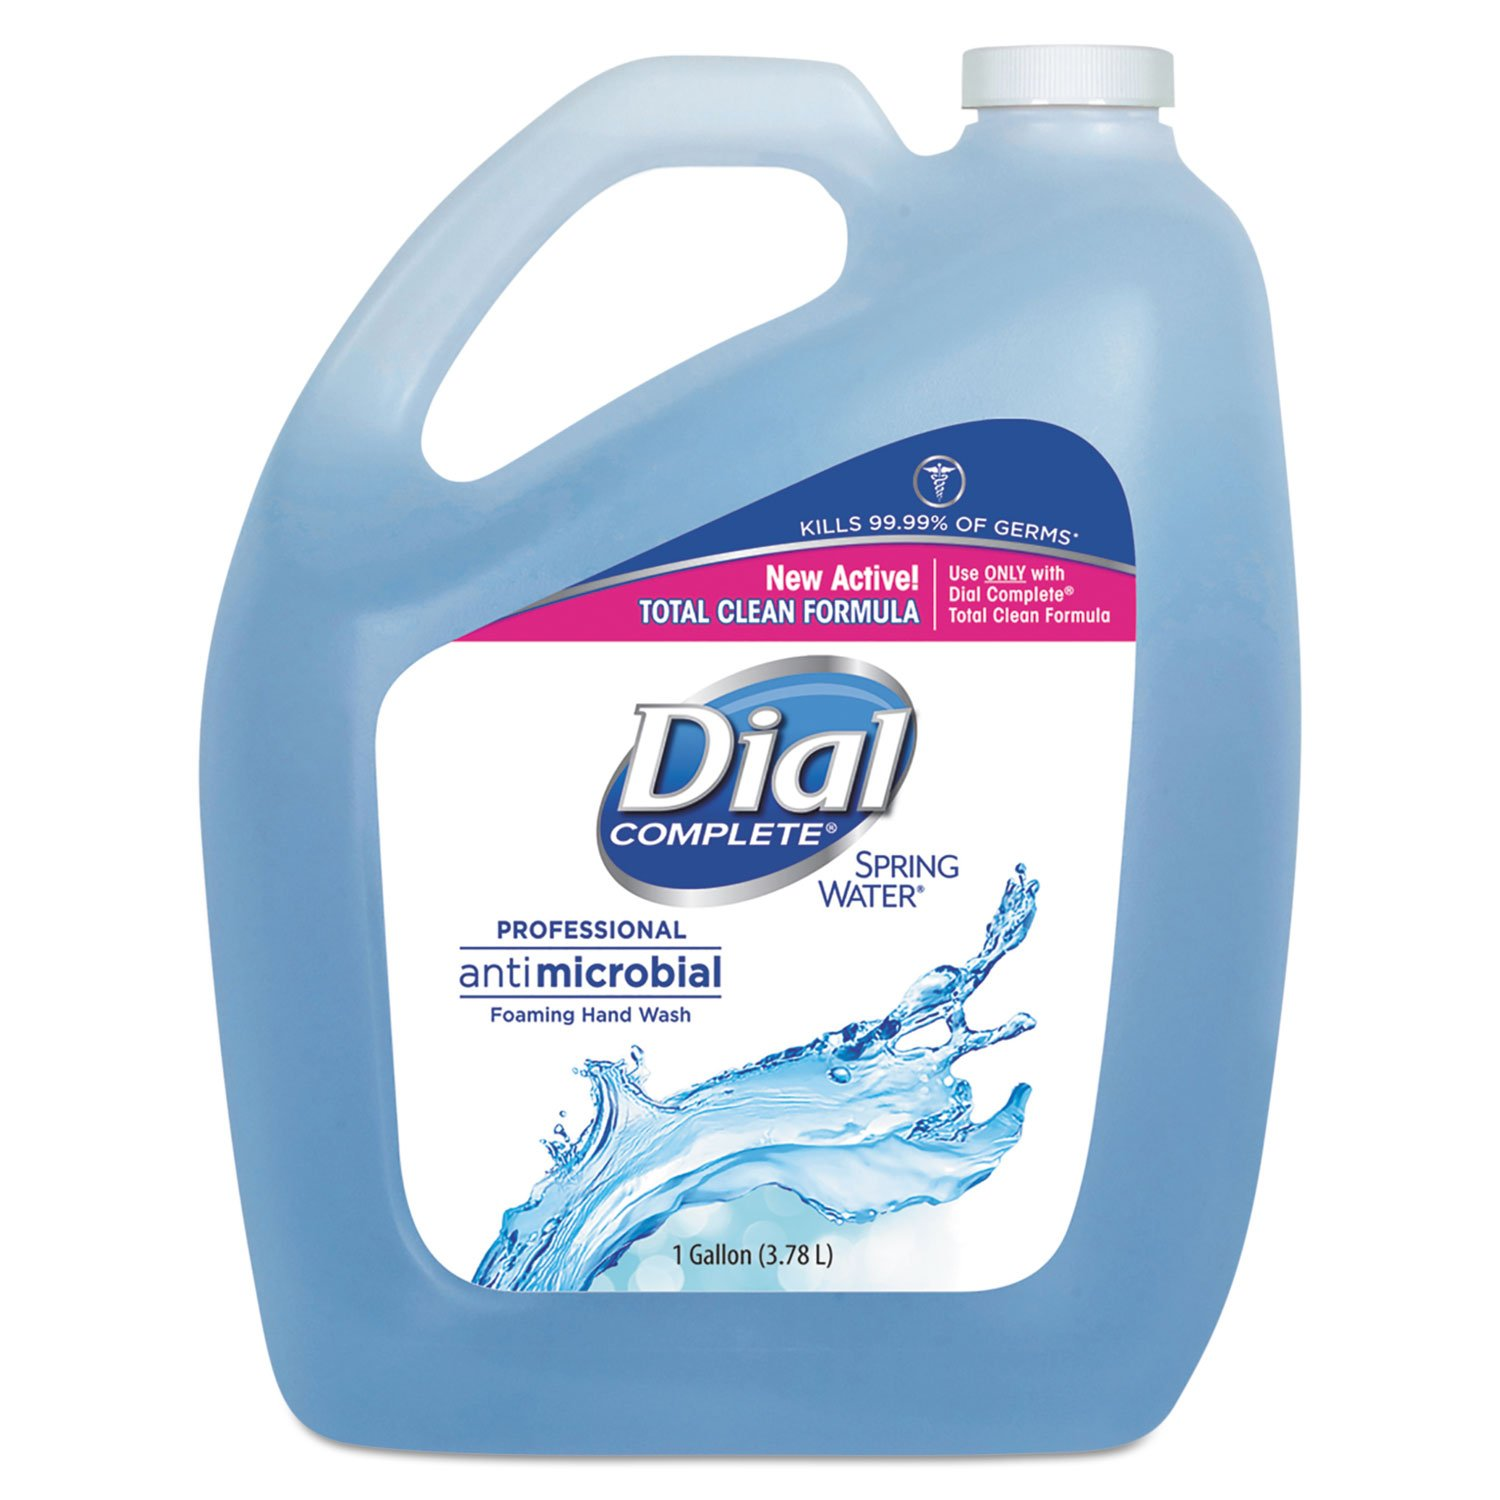 Dial Professional Antimicrobial Foaming Hand Wash, Spring Water, 1 gal Bottle, 4/Carton